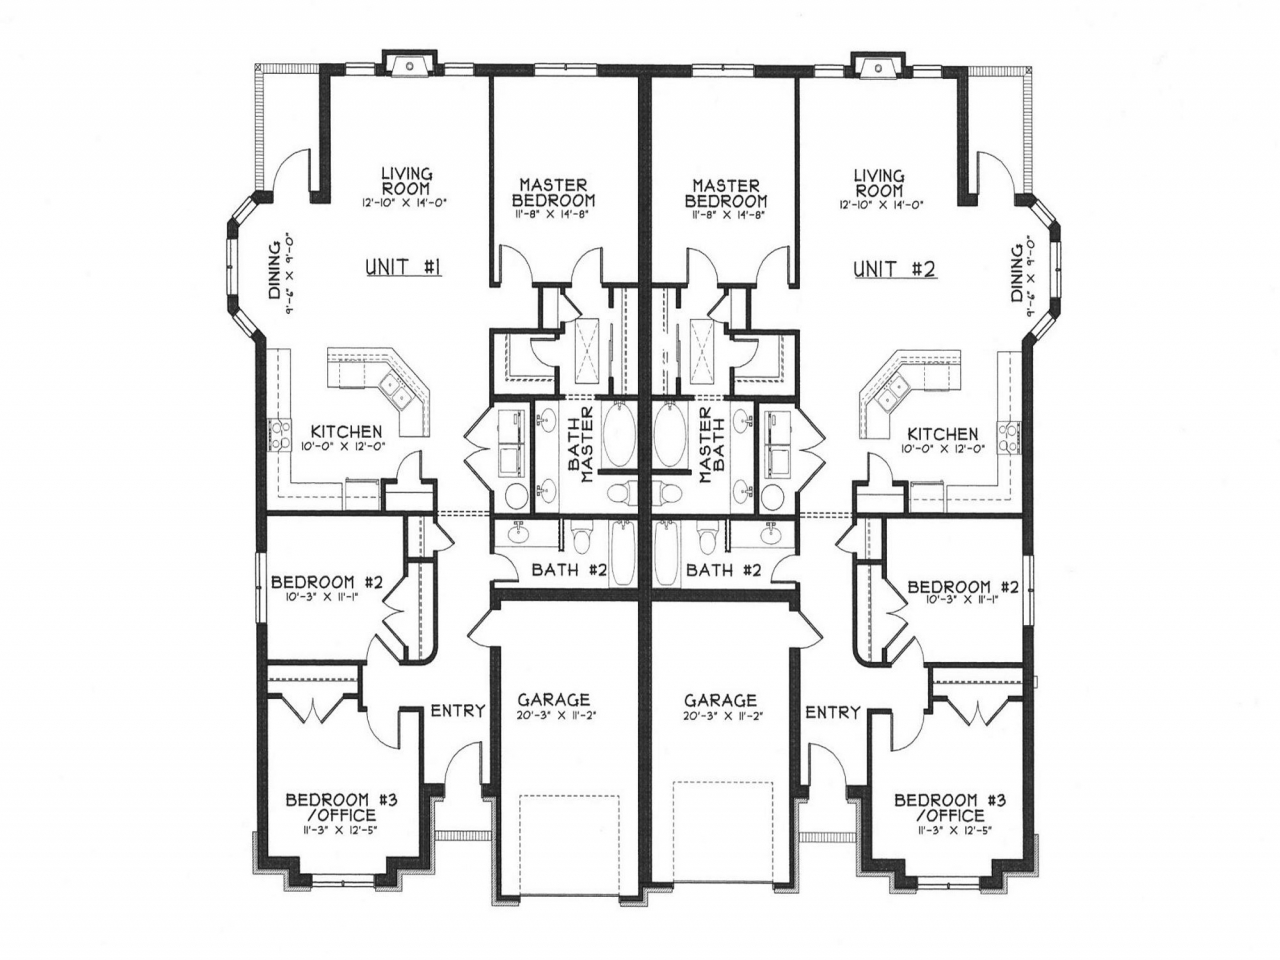 modern duplex house plans duplex house designs floor plans lrg 943be5d7df24918b - 30+ Modern Small Duplex House Plans  Pictures